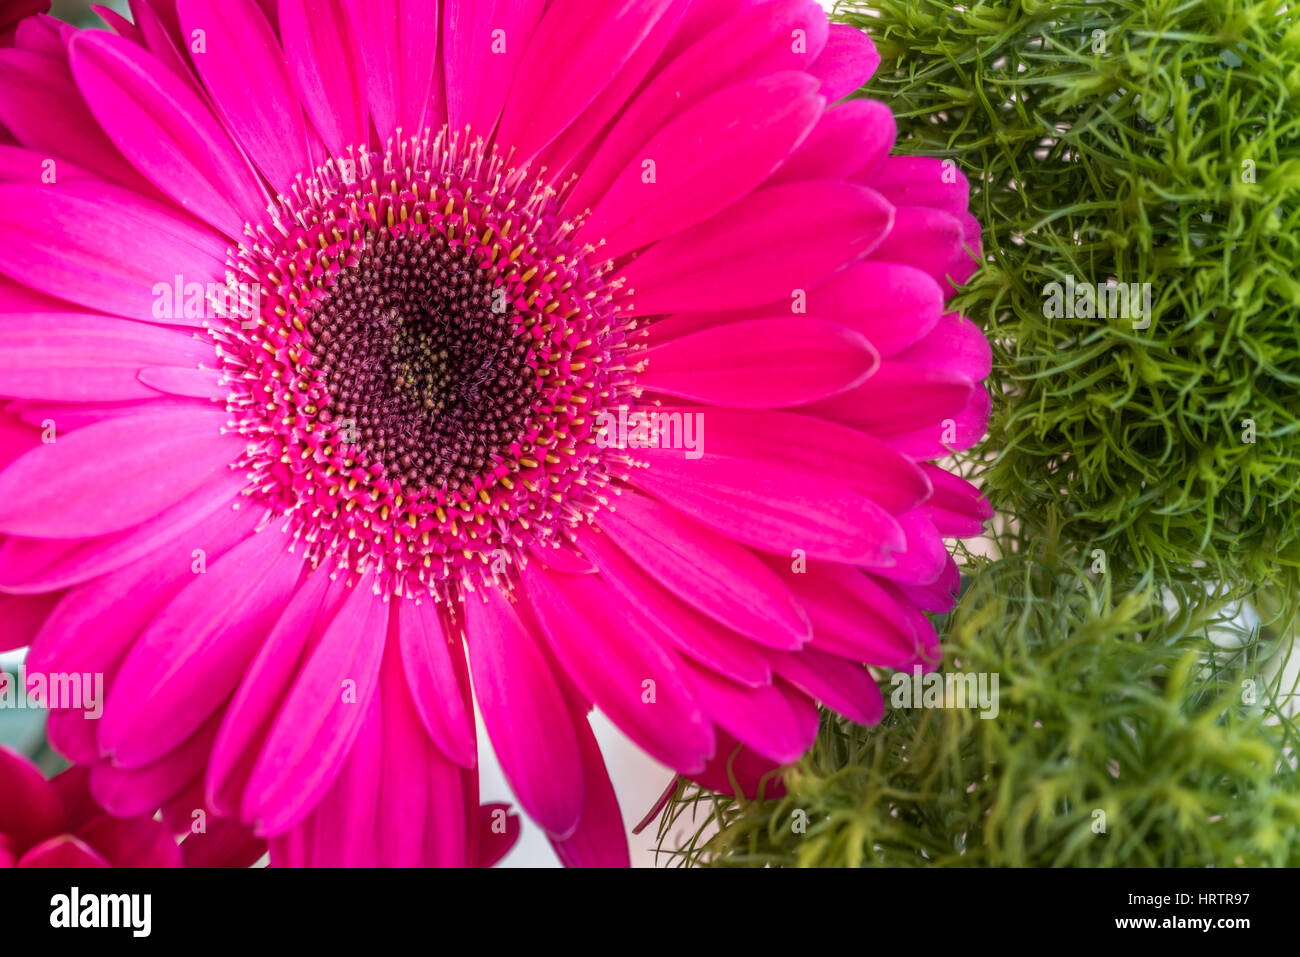 Closeup of a pink gerbera daisy flower on a green spring